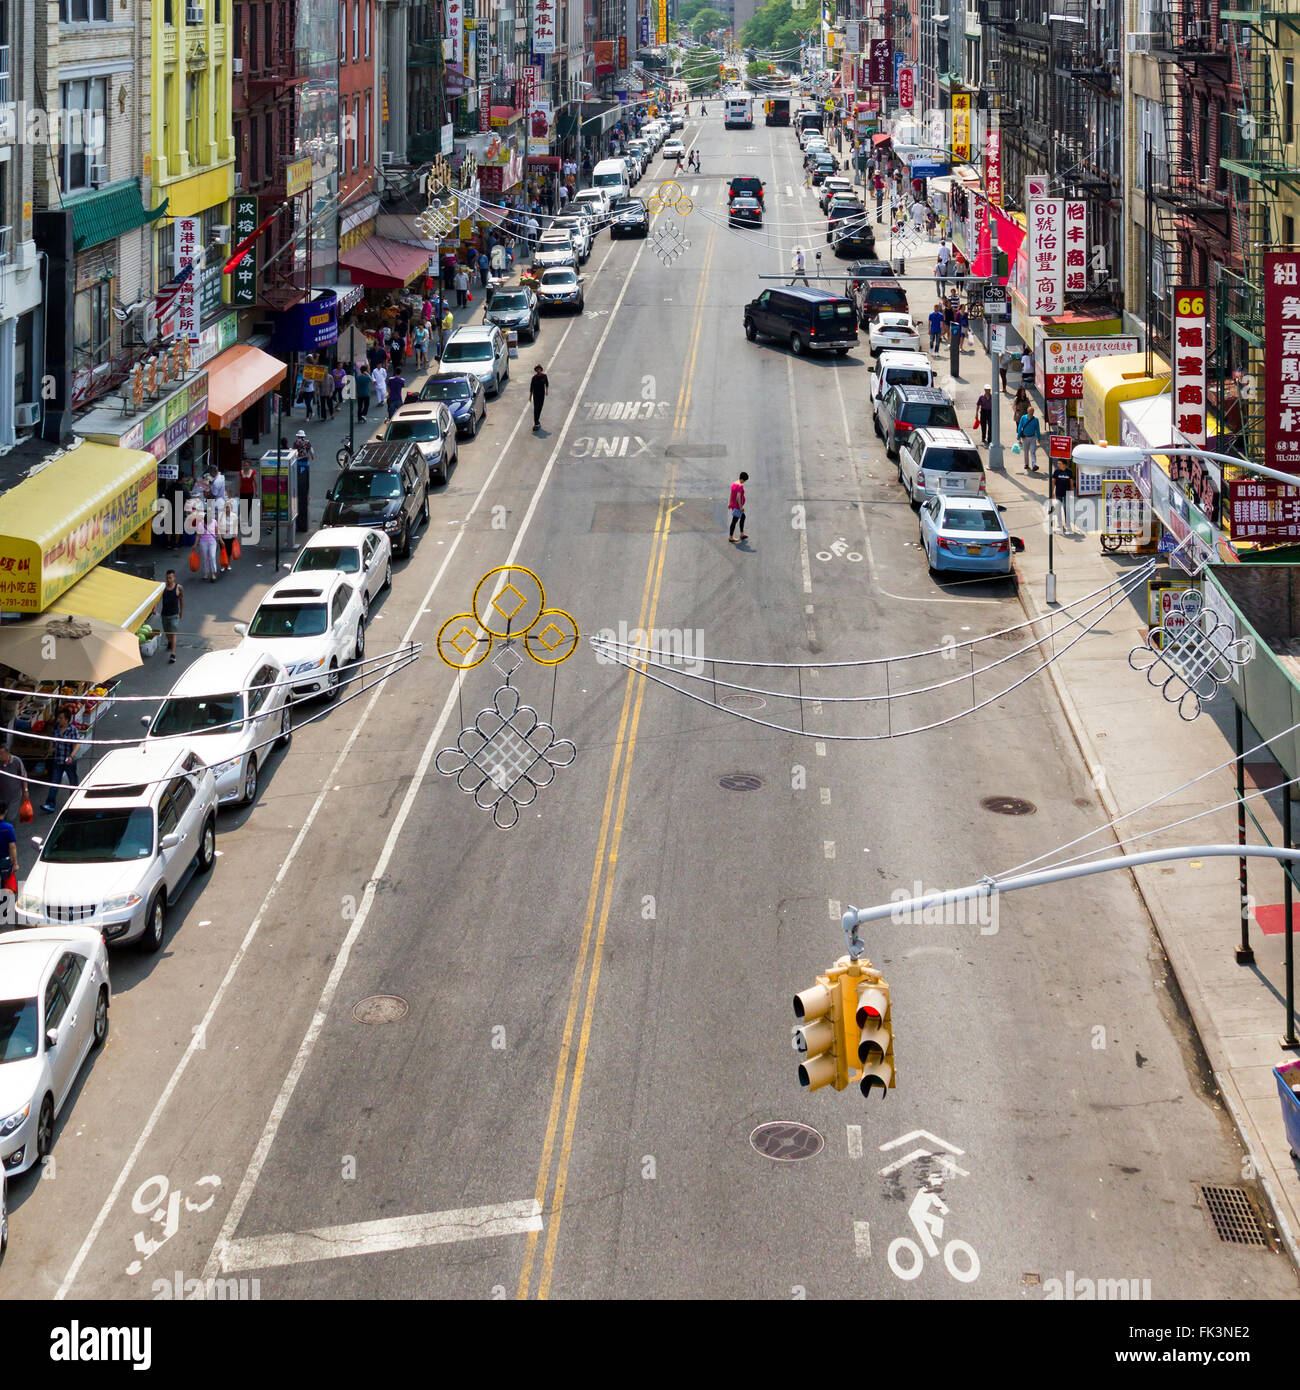 NEW YORK CITY - JULY 2015: People shop at stores along a busy block in the Chinatown neighborhood of Manhattan during Stock Photo